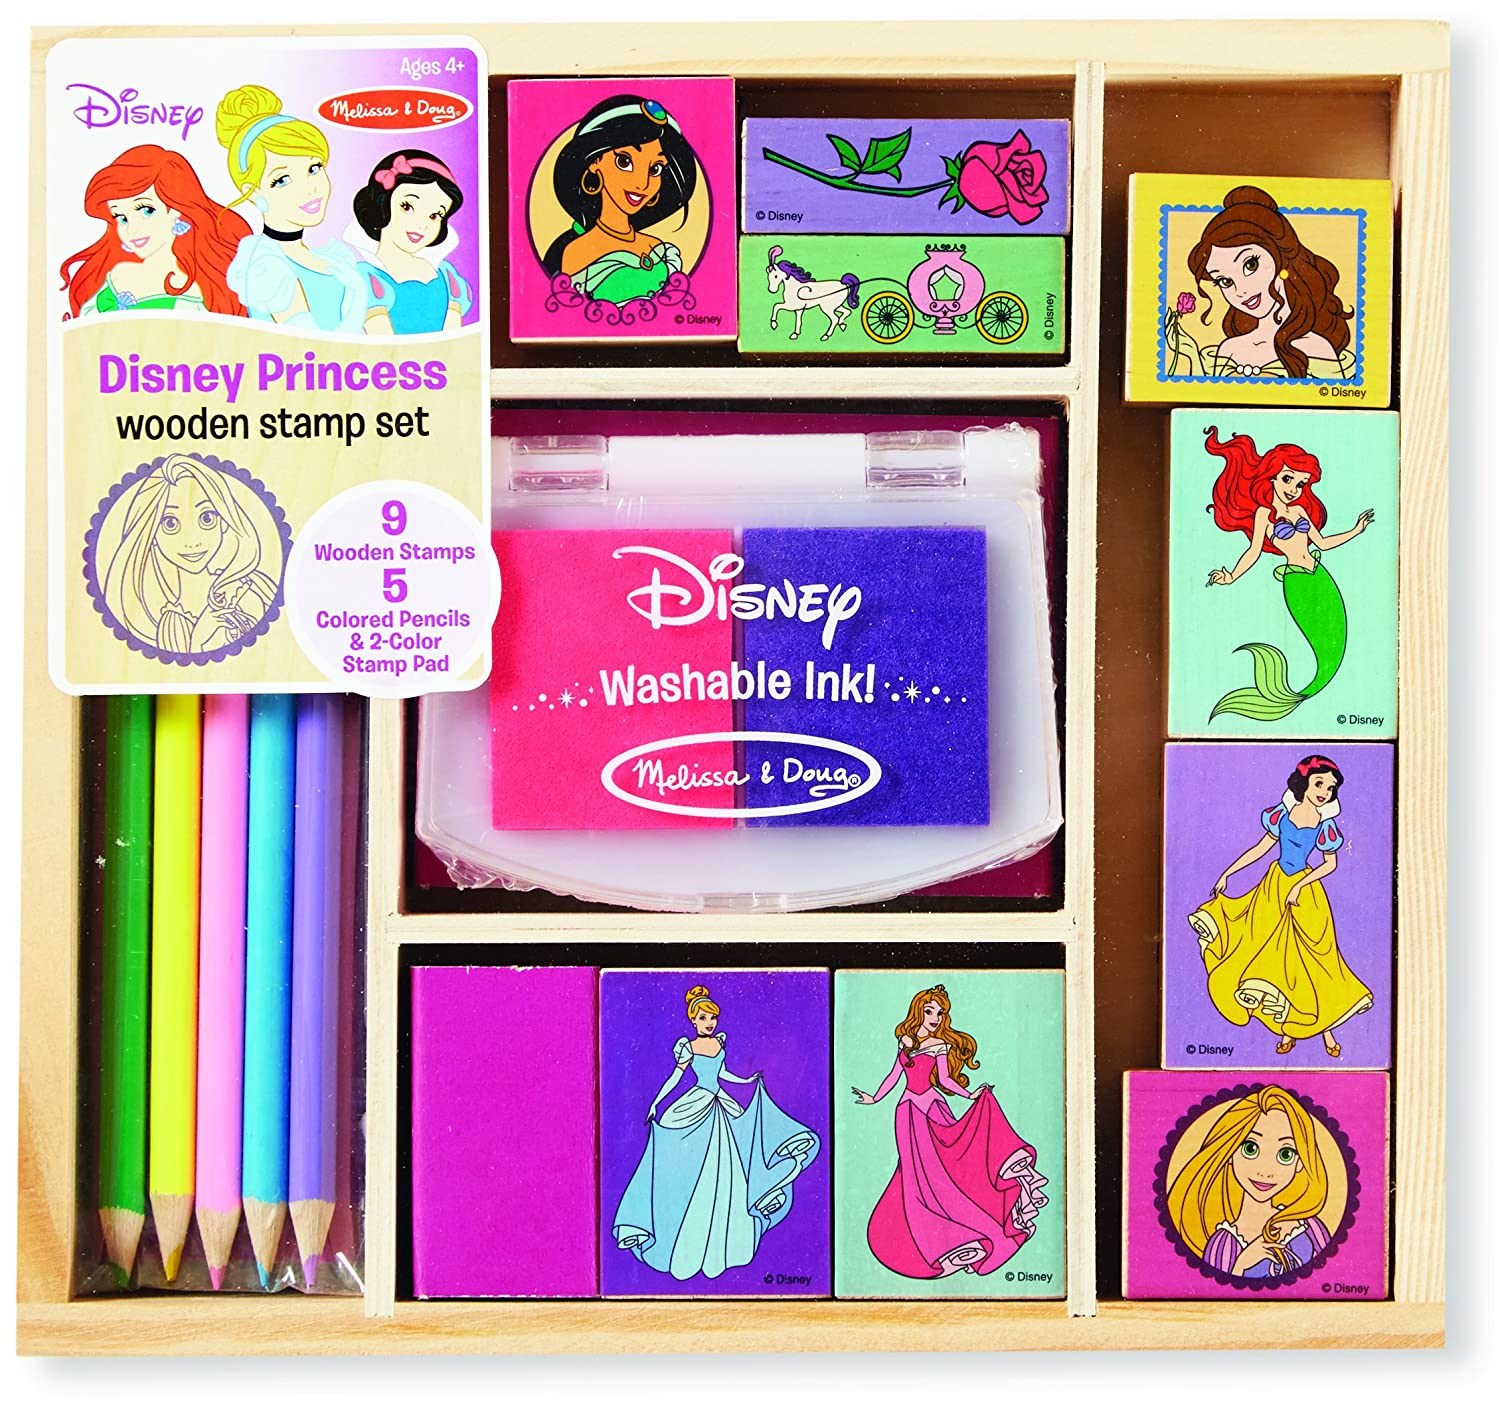 Princess coloring set - Amazon Com Melissa Doug Disney Princess Wooden Stamp Set 9 Stamps 5 Colored Pencils And 2 Color Stamp Pad Melissa Doug Toys Games